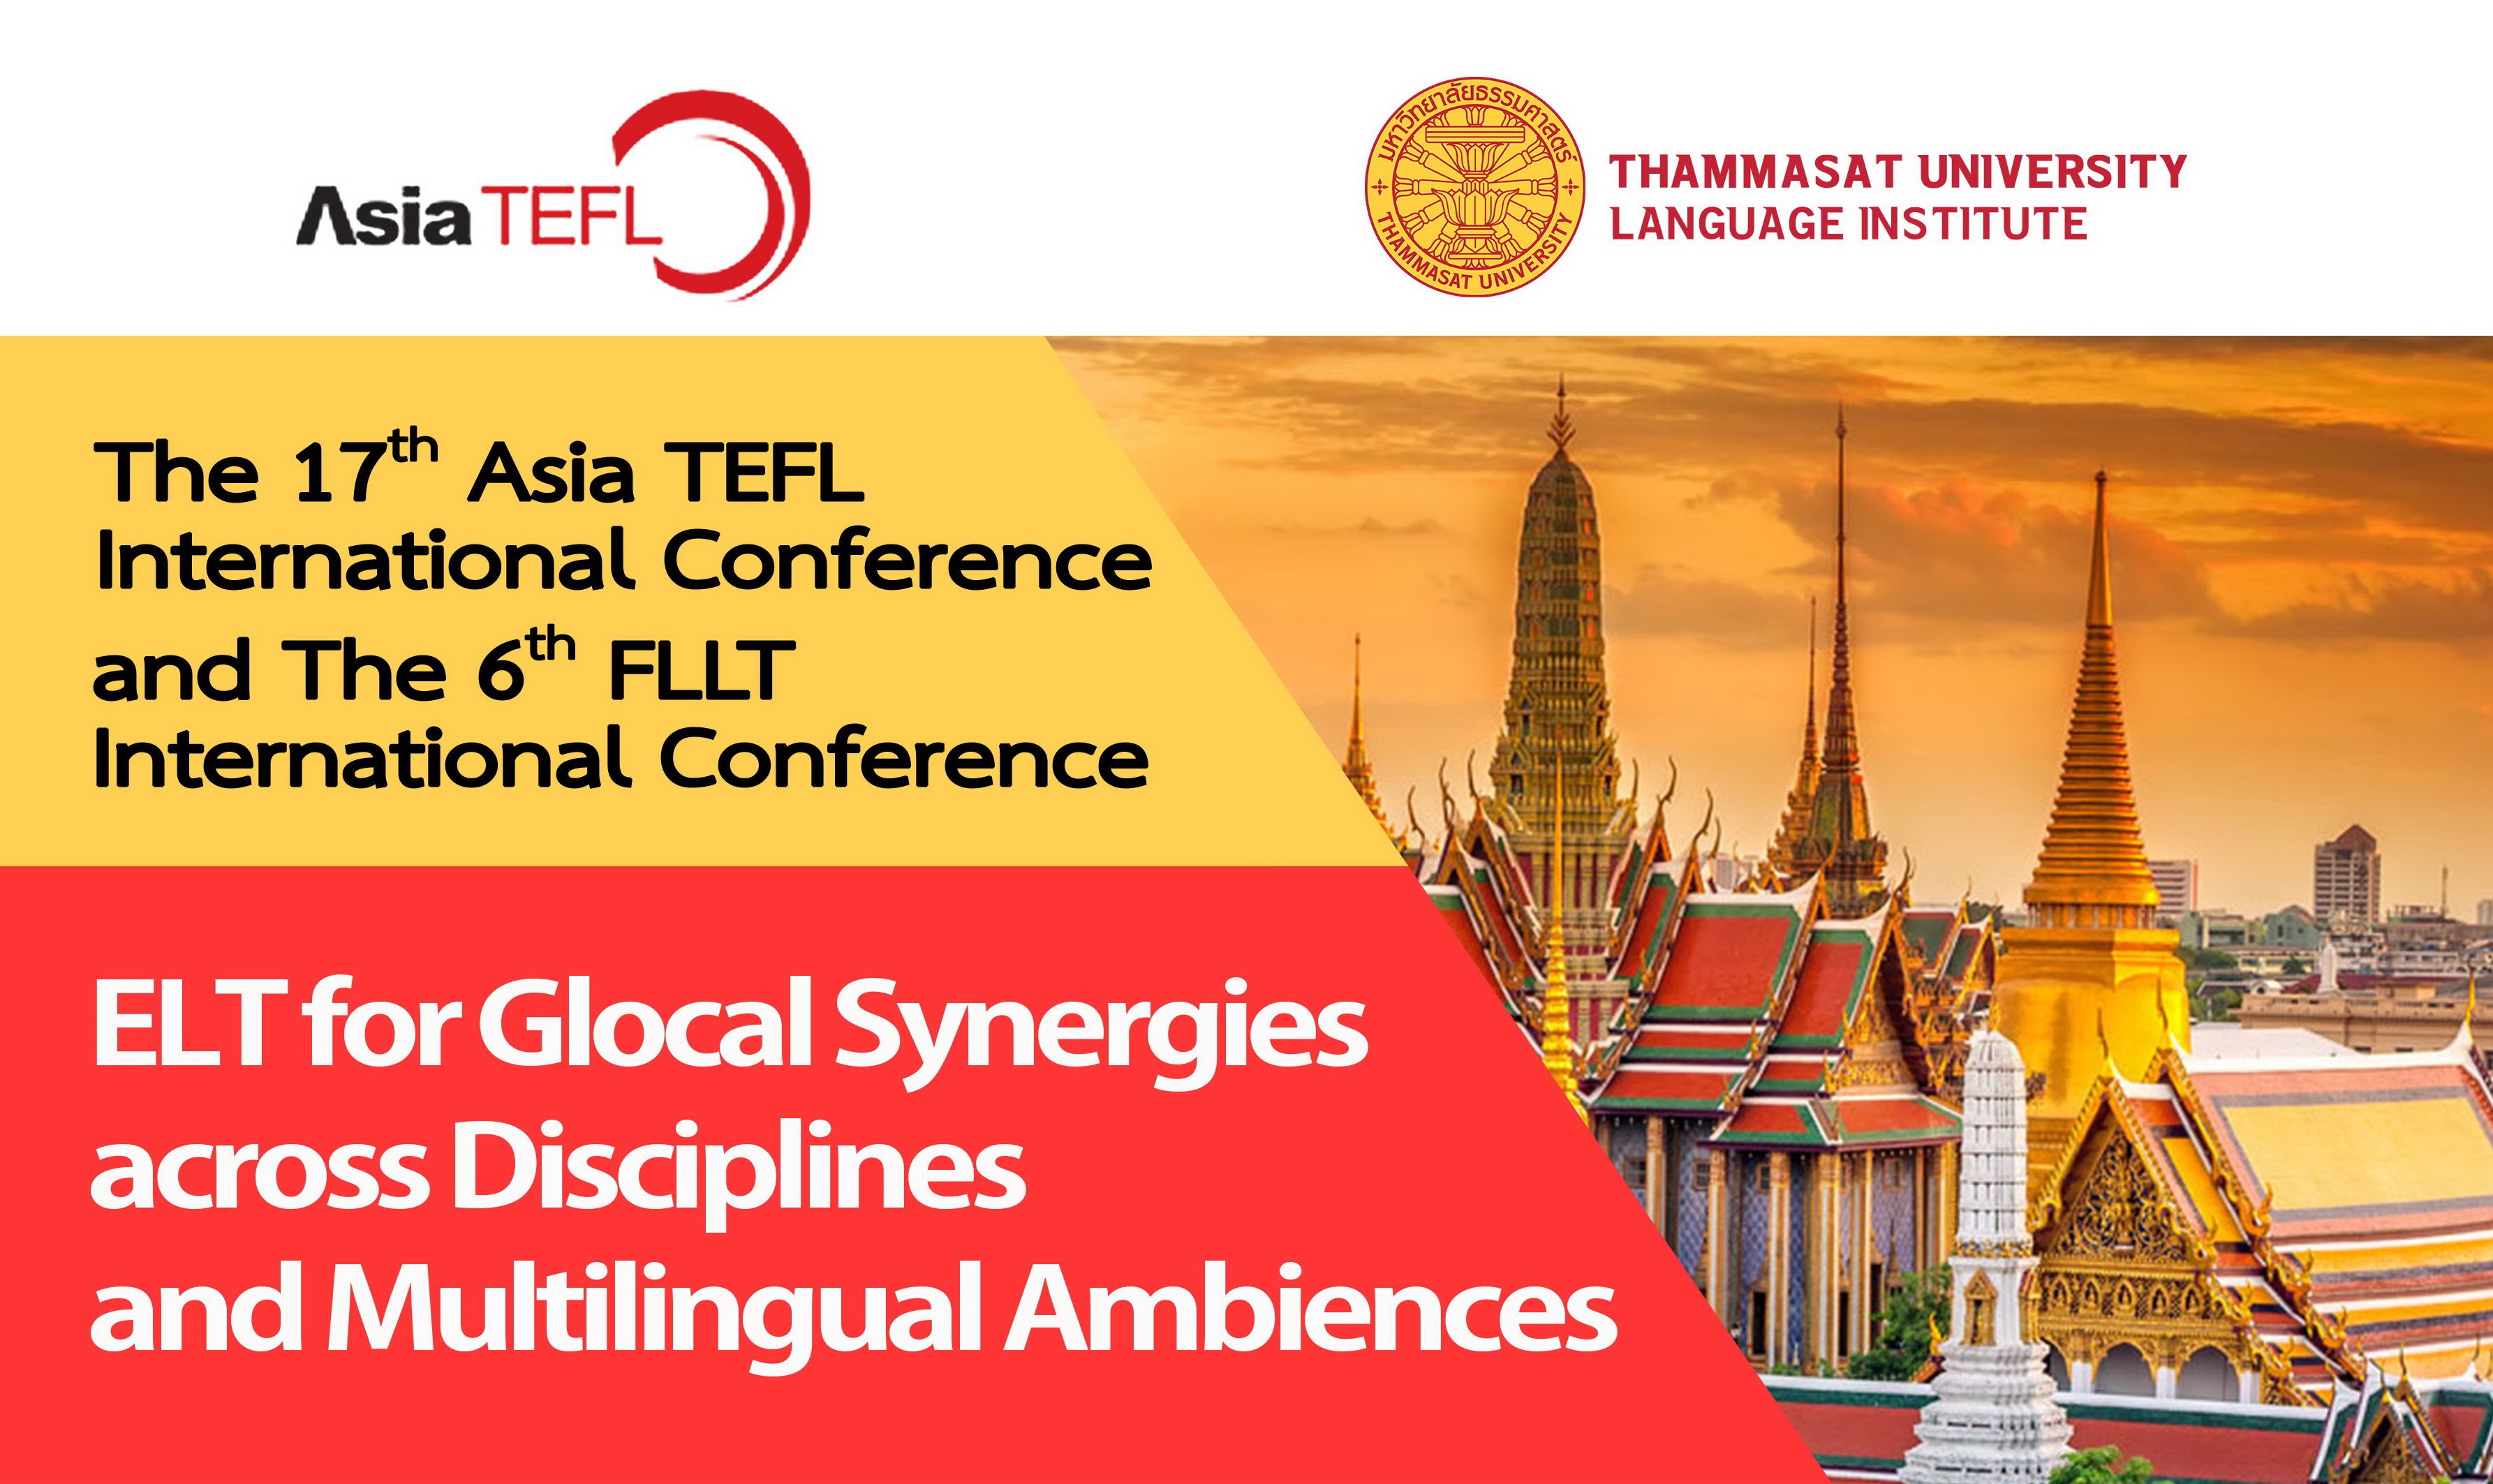 The 17th Asia TEFL International Conference and The 6th FLLT International Conference